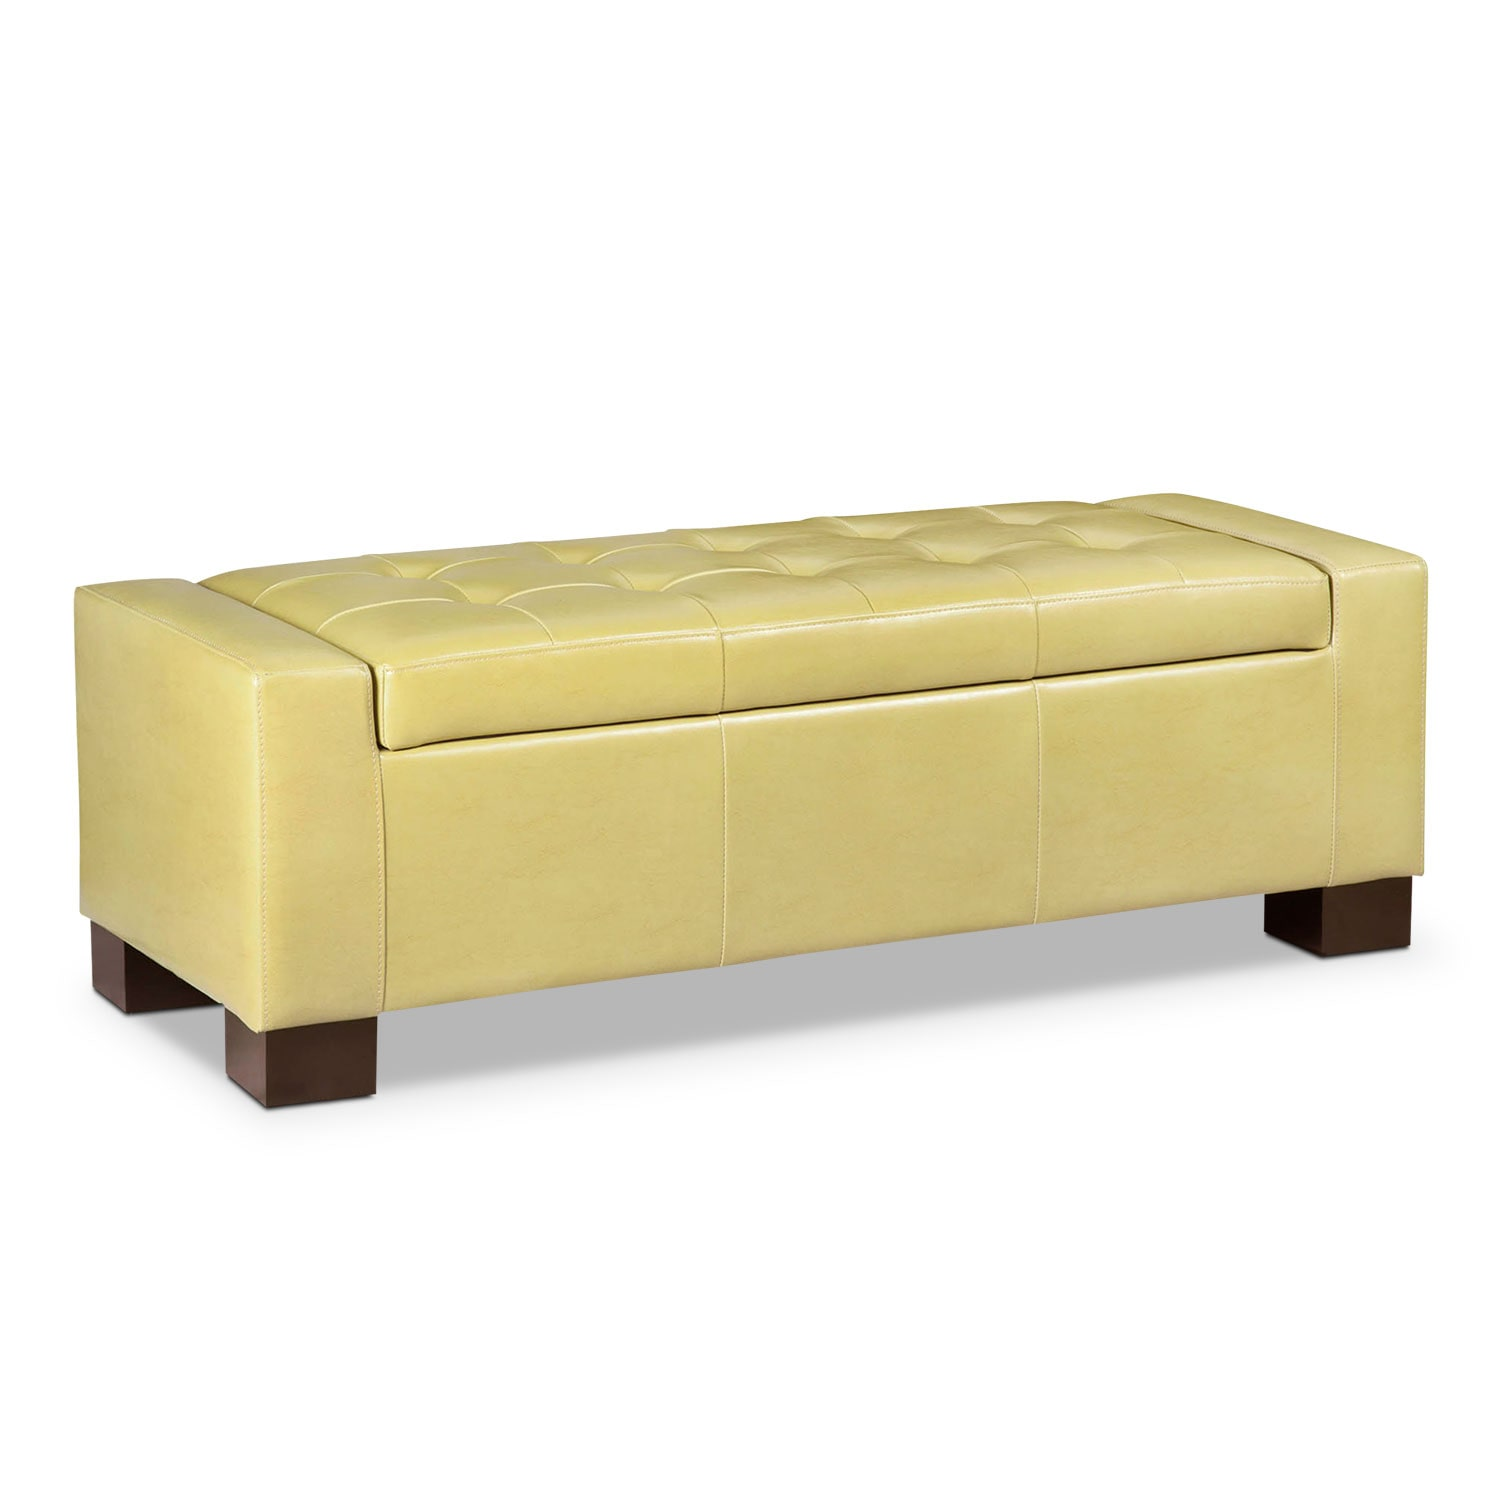 Jive Storage Ottoman - Yellow